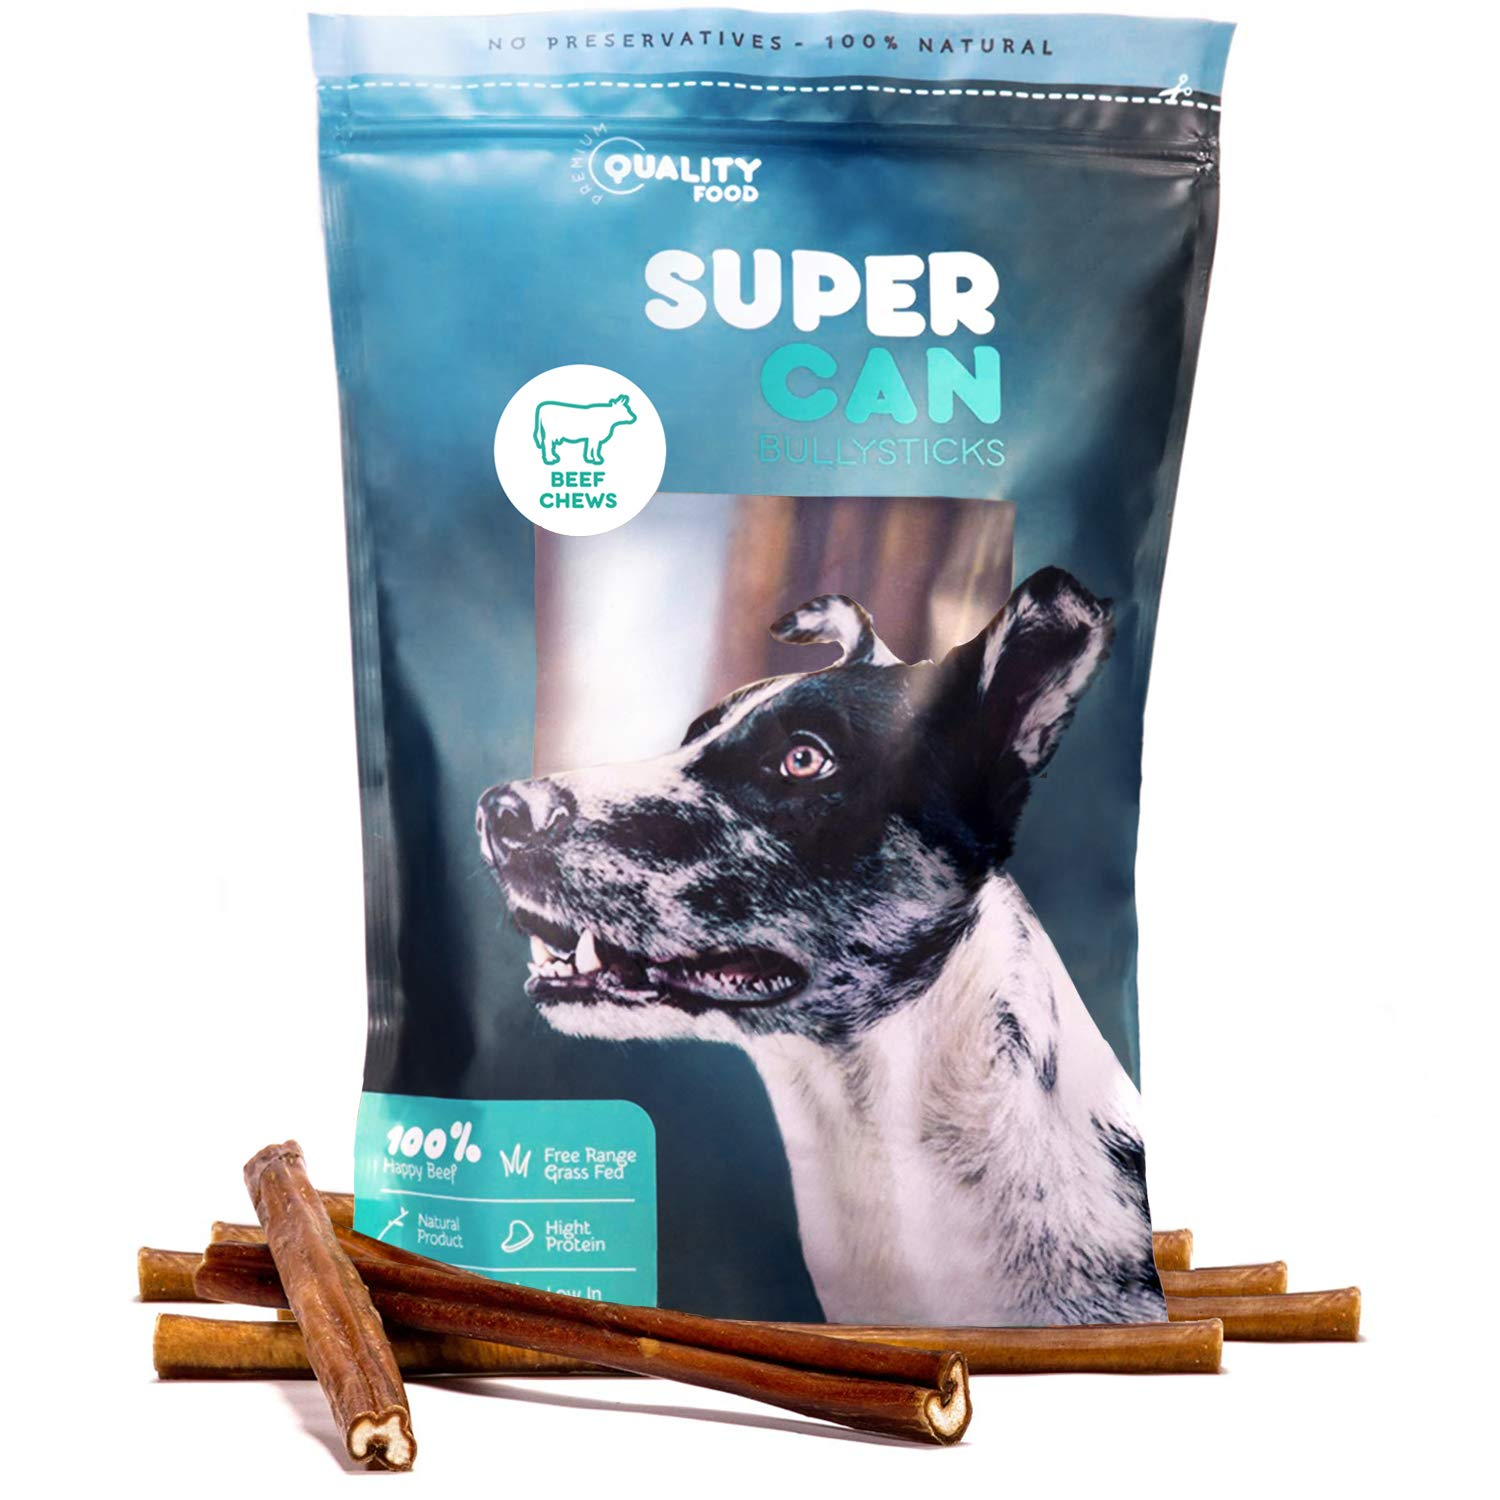 12- Prime Thick Odor Free Bully Sticks [ 7 Pack ] by Super CAN Bully Sticks, 100% Natural Free Premium Cattle Beef. Healthy Nutritious & Delicious Dog Treats and Chews for All Dog Sizes